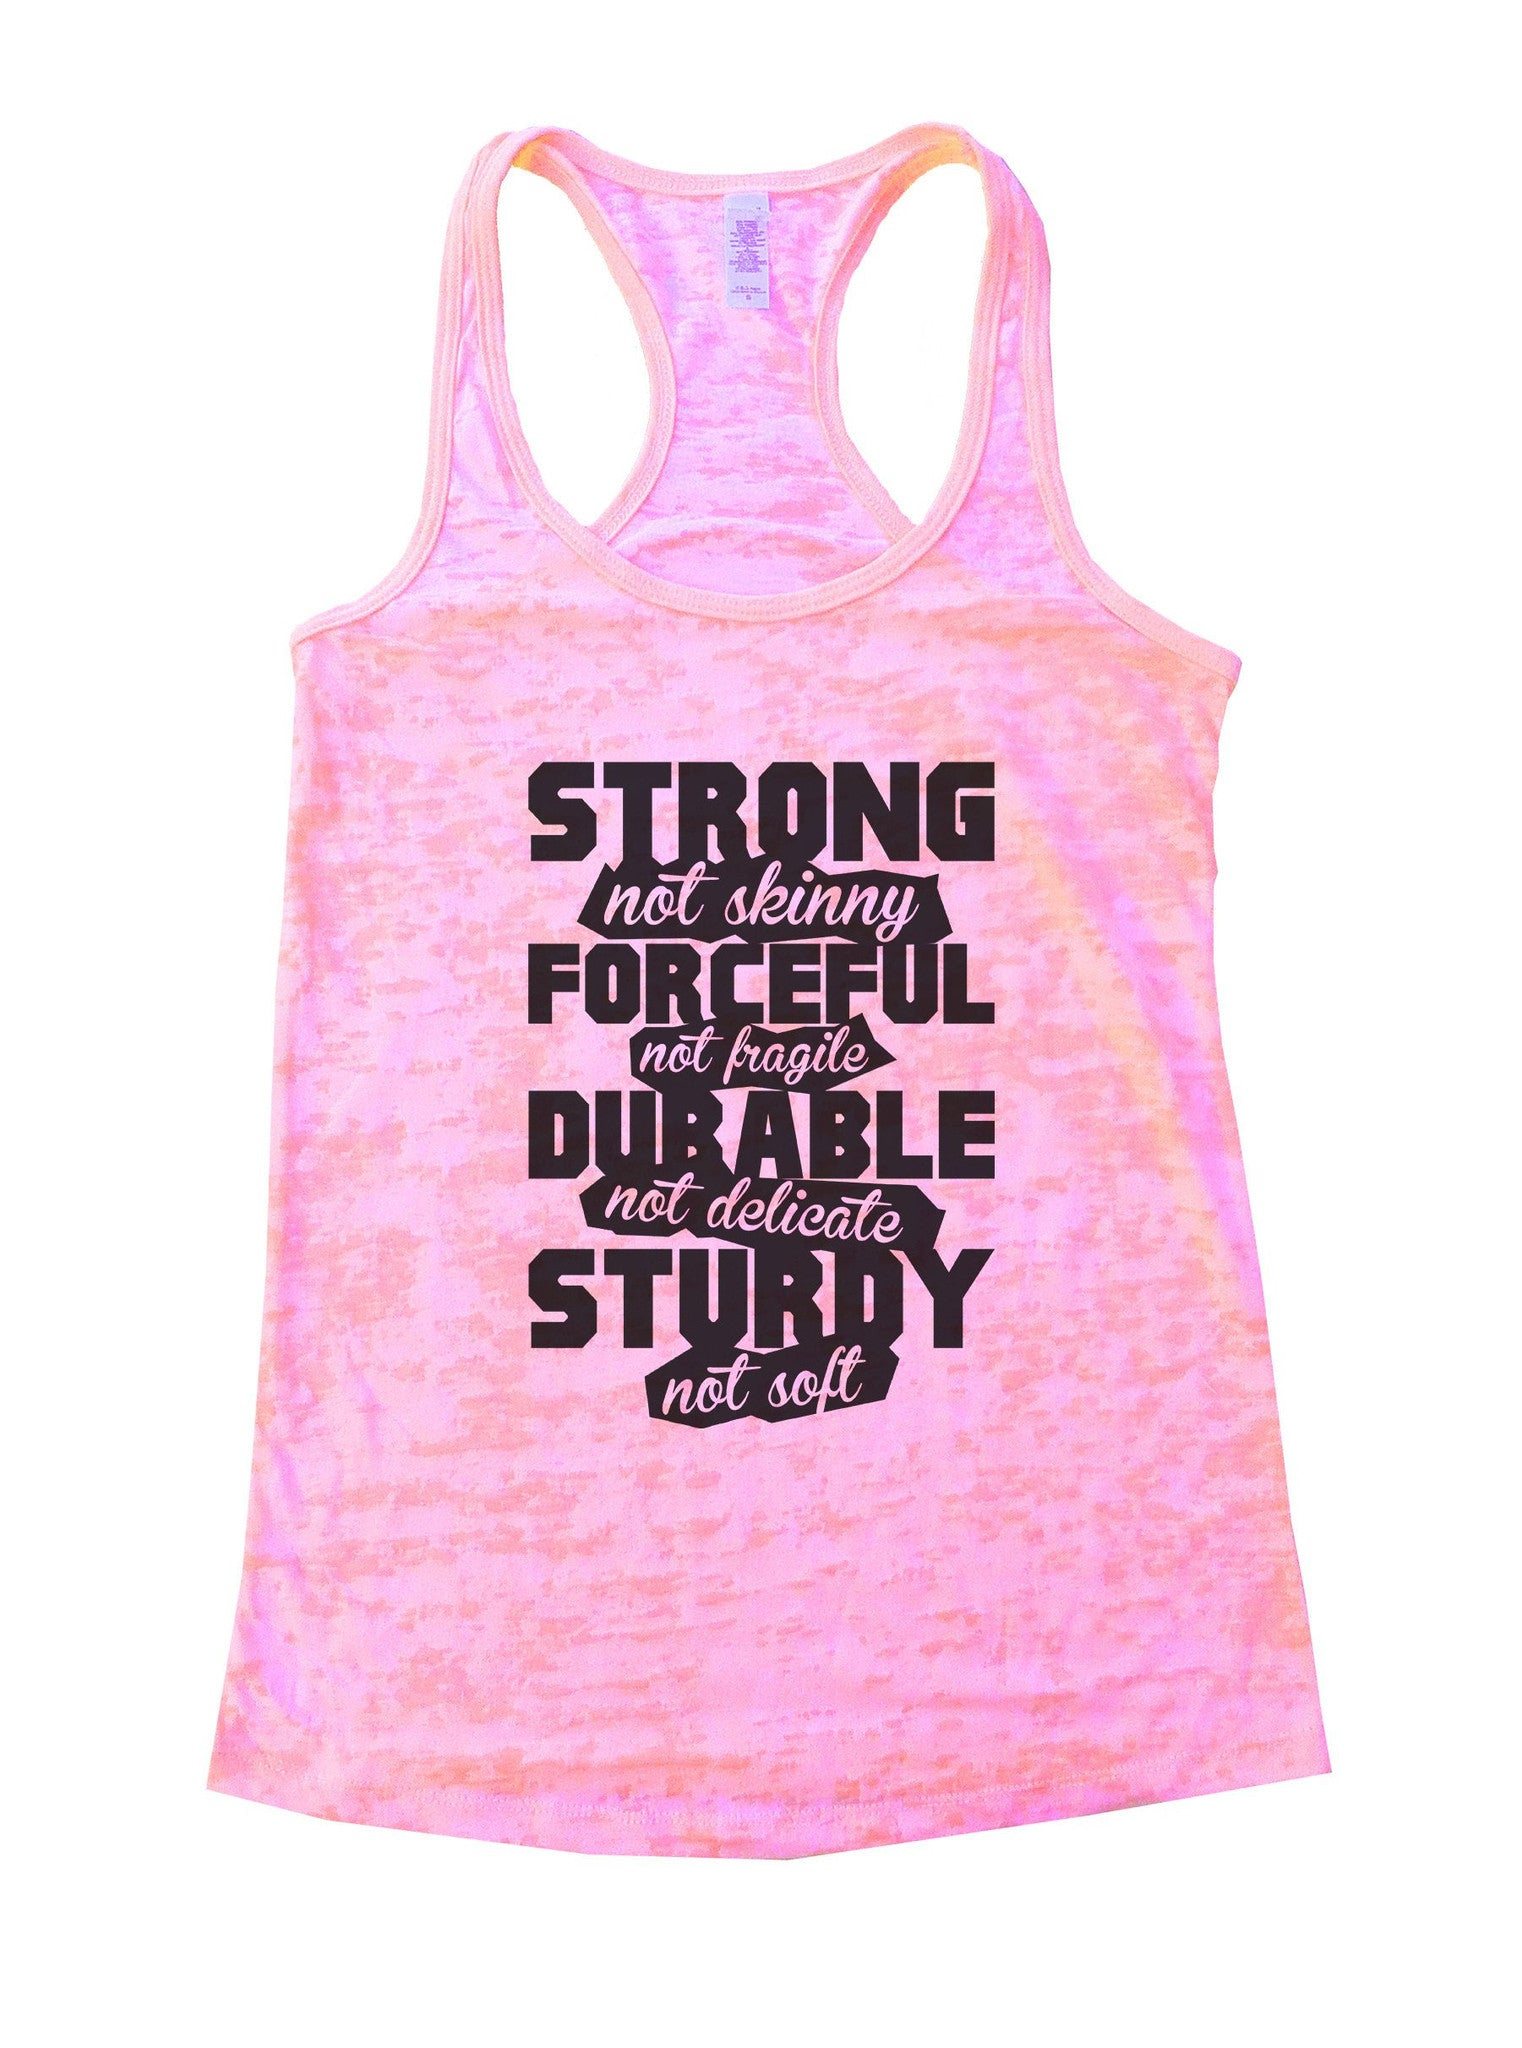 Strong Not Skinny Forceful Not Fragile Durable Not Delicate Sturdy Not Soft Burnout Tank Top By BurnoutTankTops.com - 845 - Funny Shirts Tank Tops Burnouts and Triblends  - 1